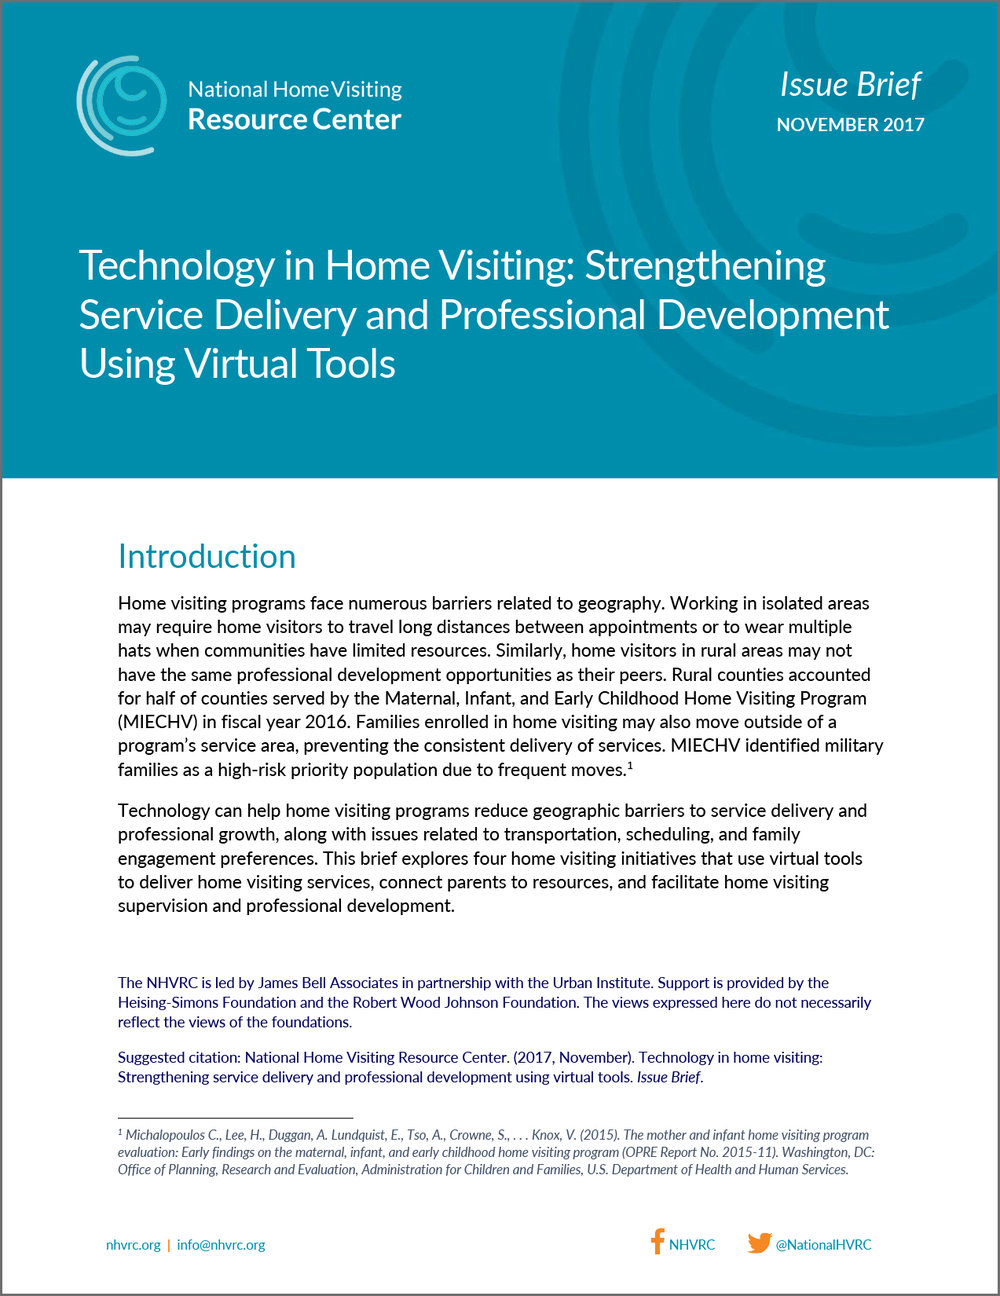 NHVRC Issue Brief, Technology in Home Visiting: Strengthening Service Delivery and Professional Development Using Virtual Tools